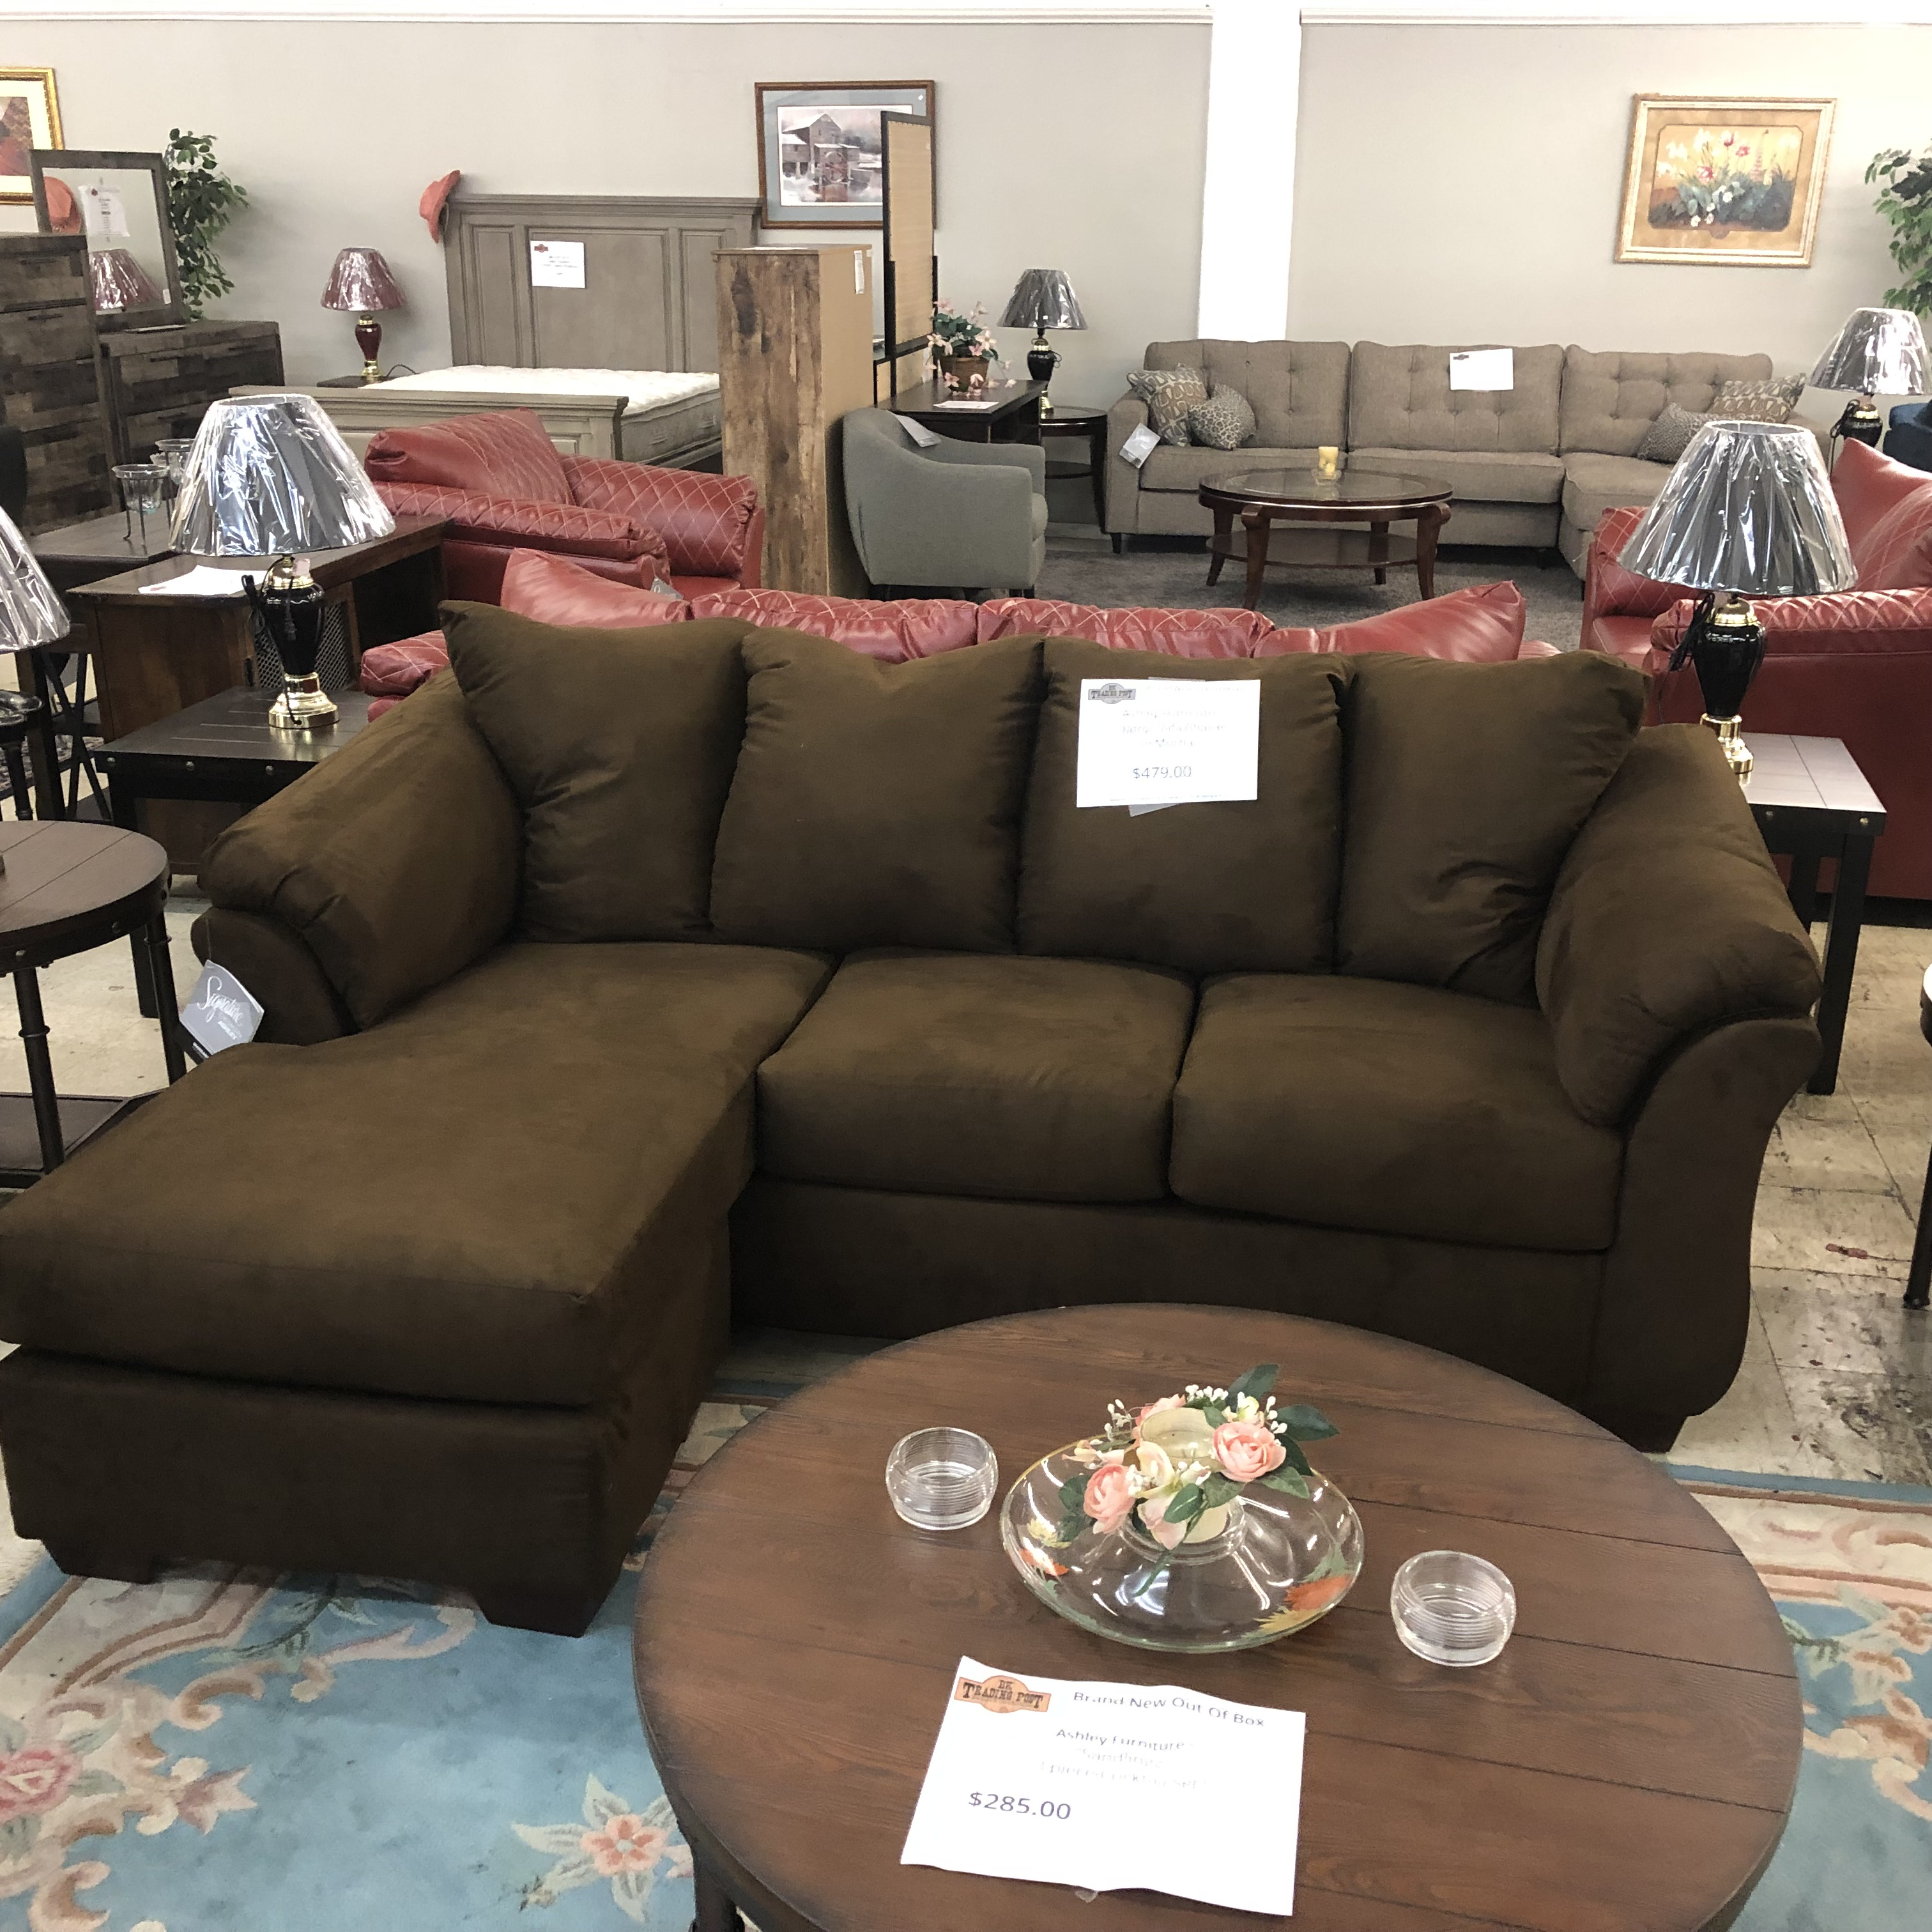 Sensational Living Room Brand New Ashley Darcy Sofa Chaise In Mocha Squirreltailoven Fun Painted Chair Ideas Images Squirreltailovenorg